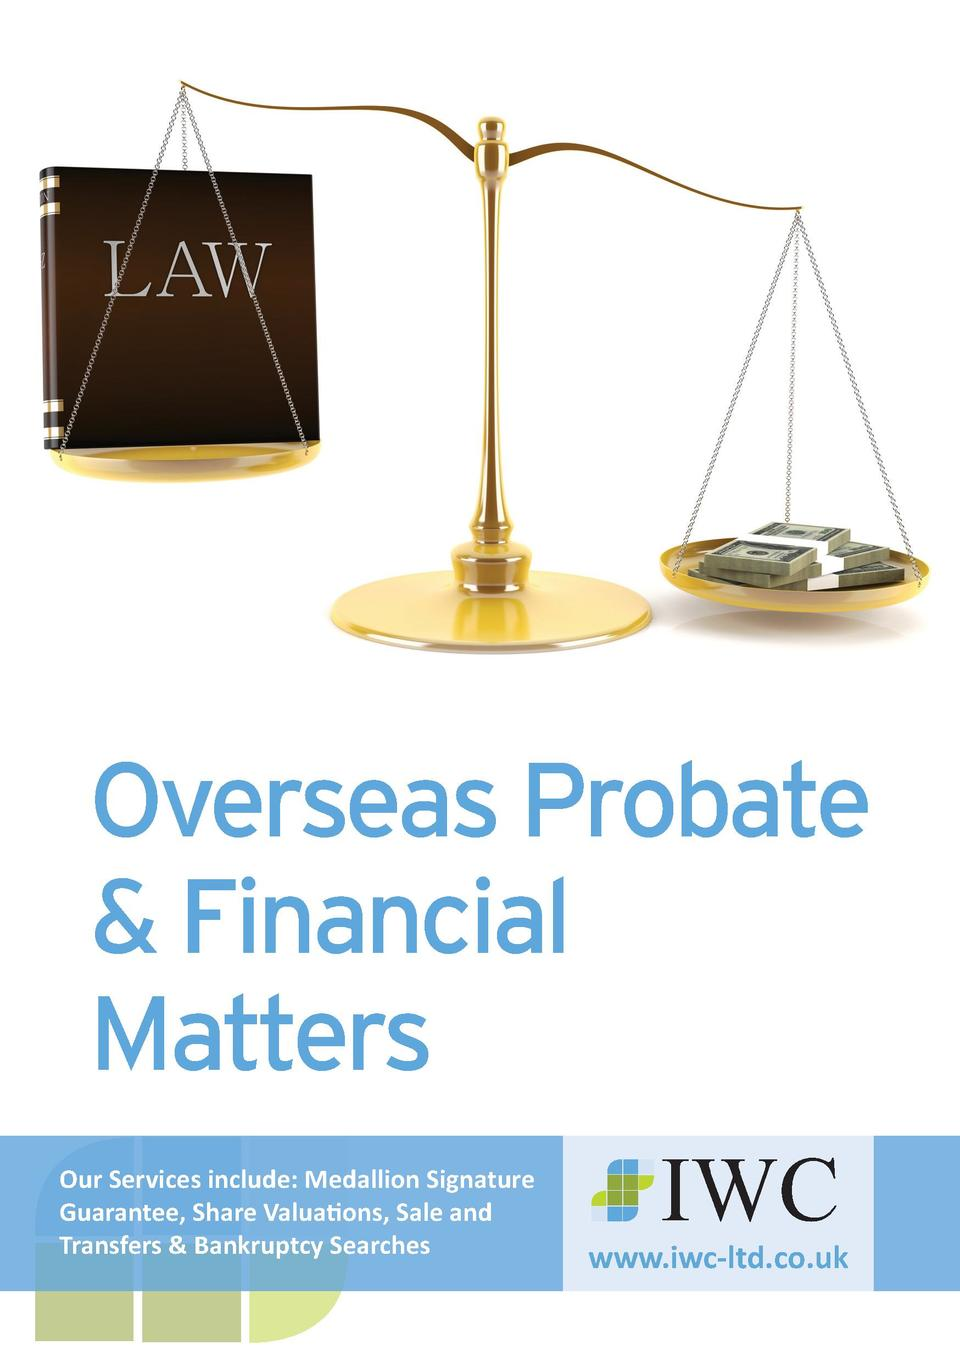 1298_IWC_Booklet_1298_IWC_Booklet 03 08 2014 23 41 Page 1  Overseas Probate   Financial Matters Our Services include  Meda...